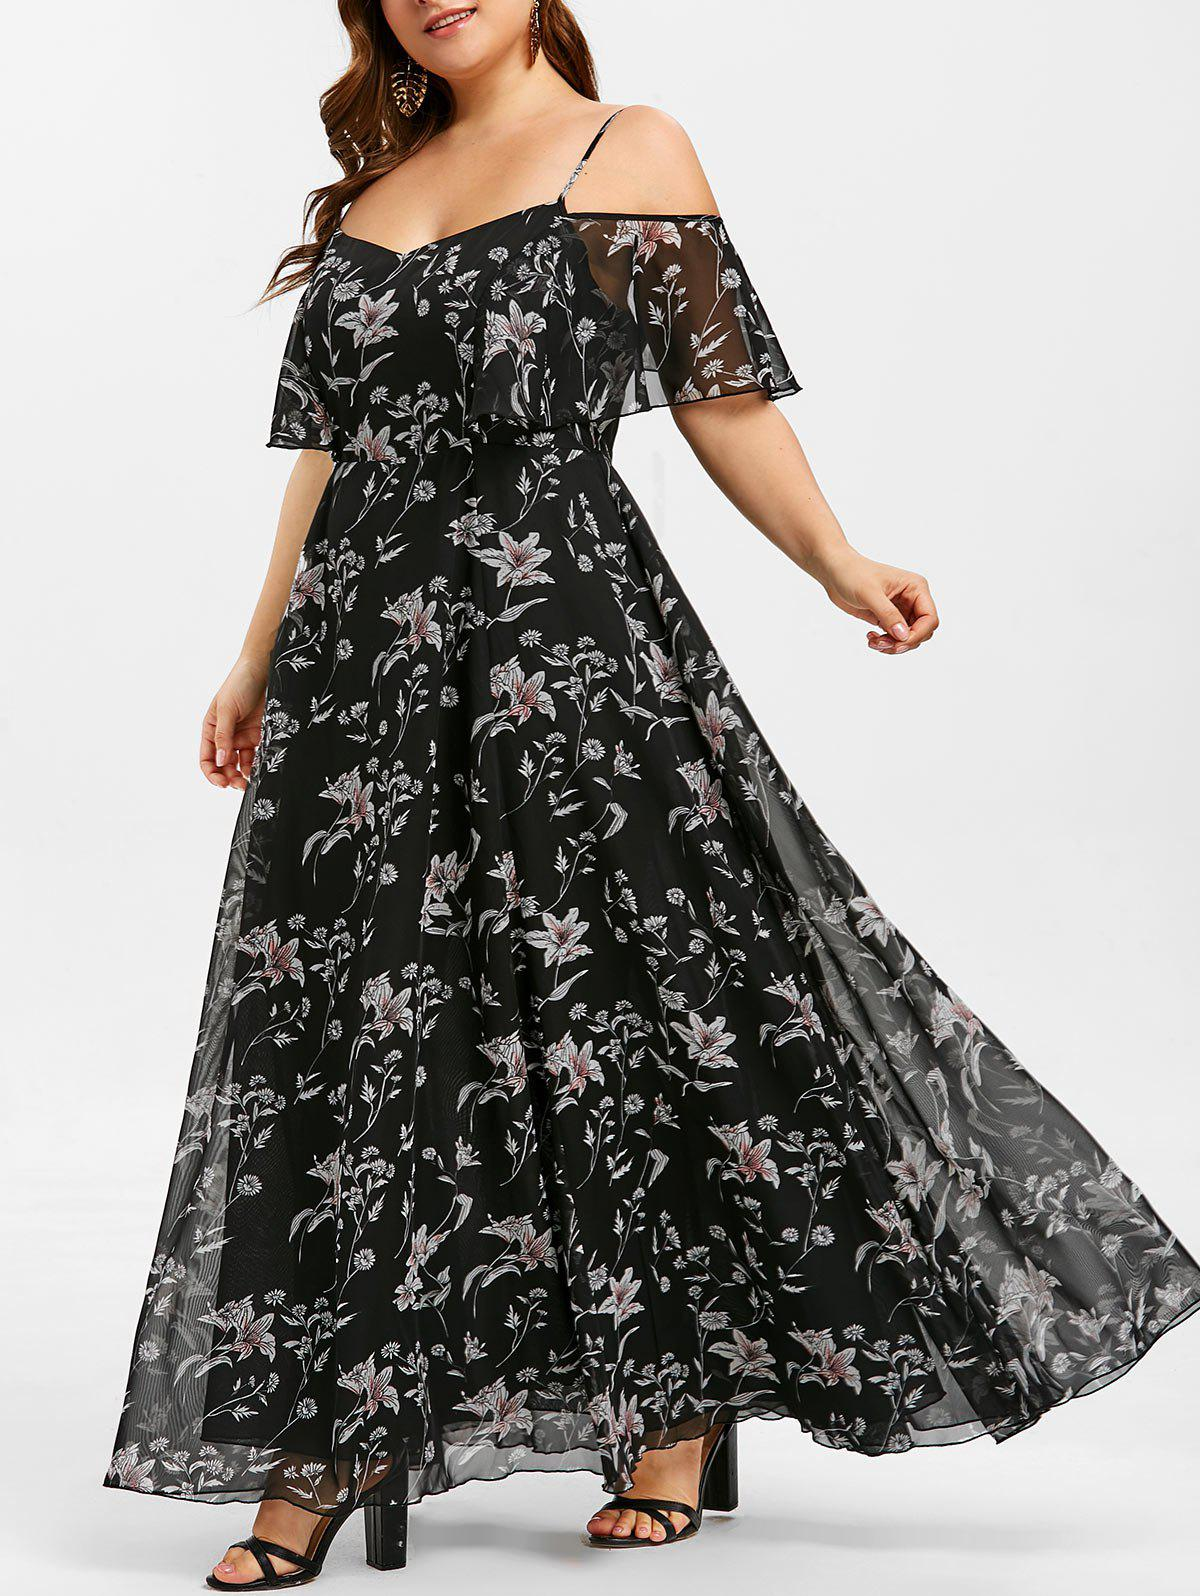 Hot Plant Print Flounce Plus Size Maxi Dress